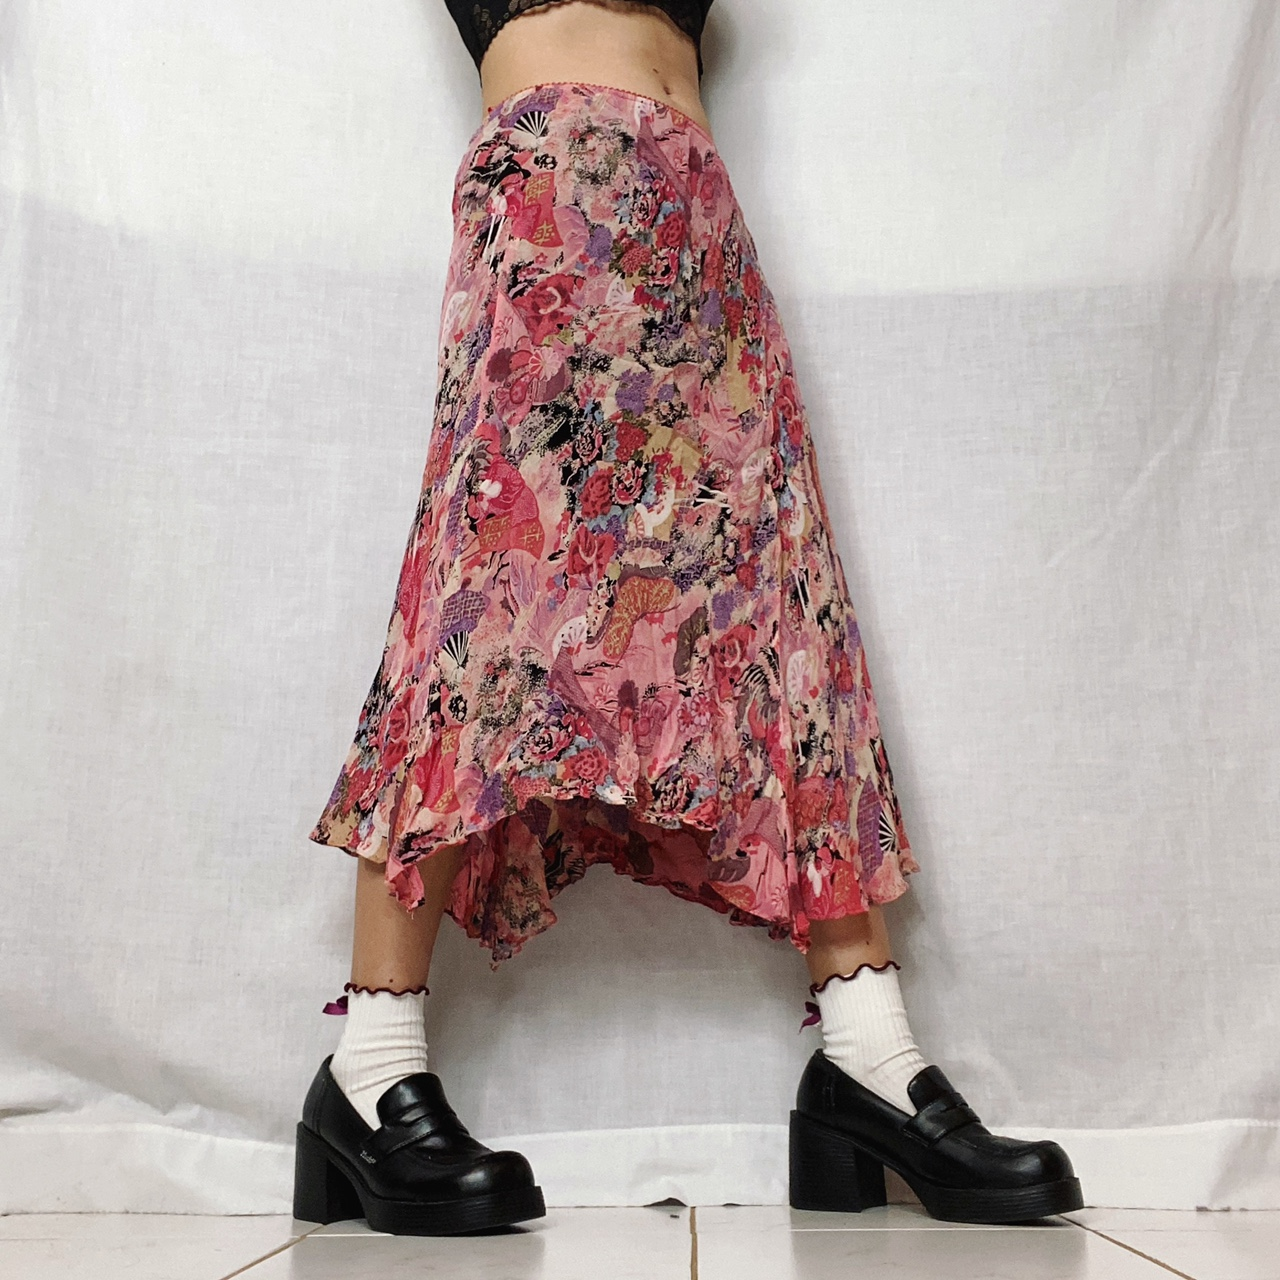 Product Image 1 - 90s floral skirt  by Angie. beautiful